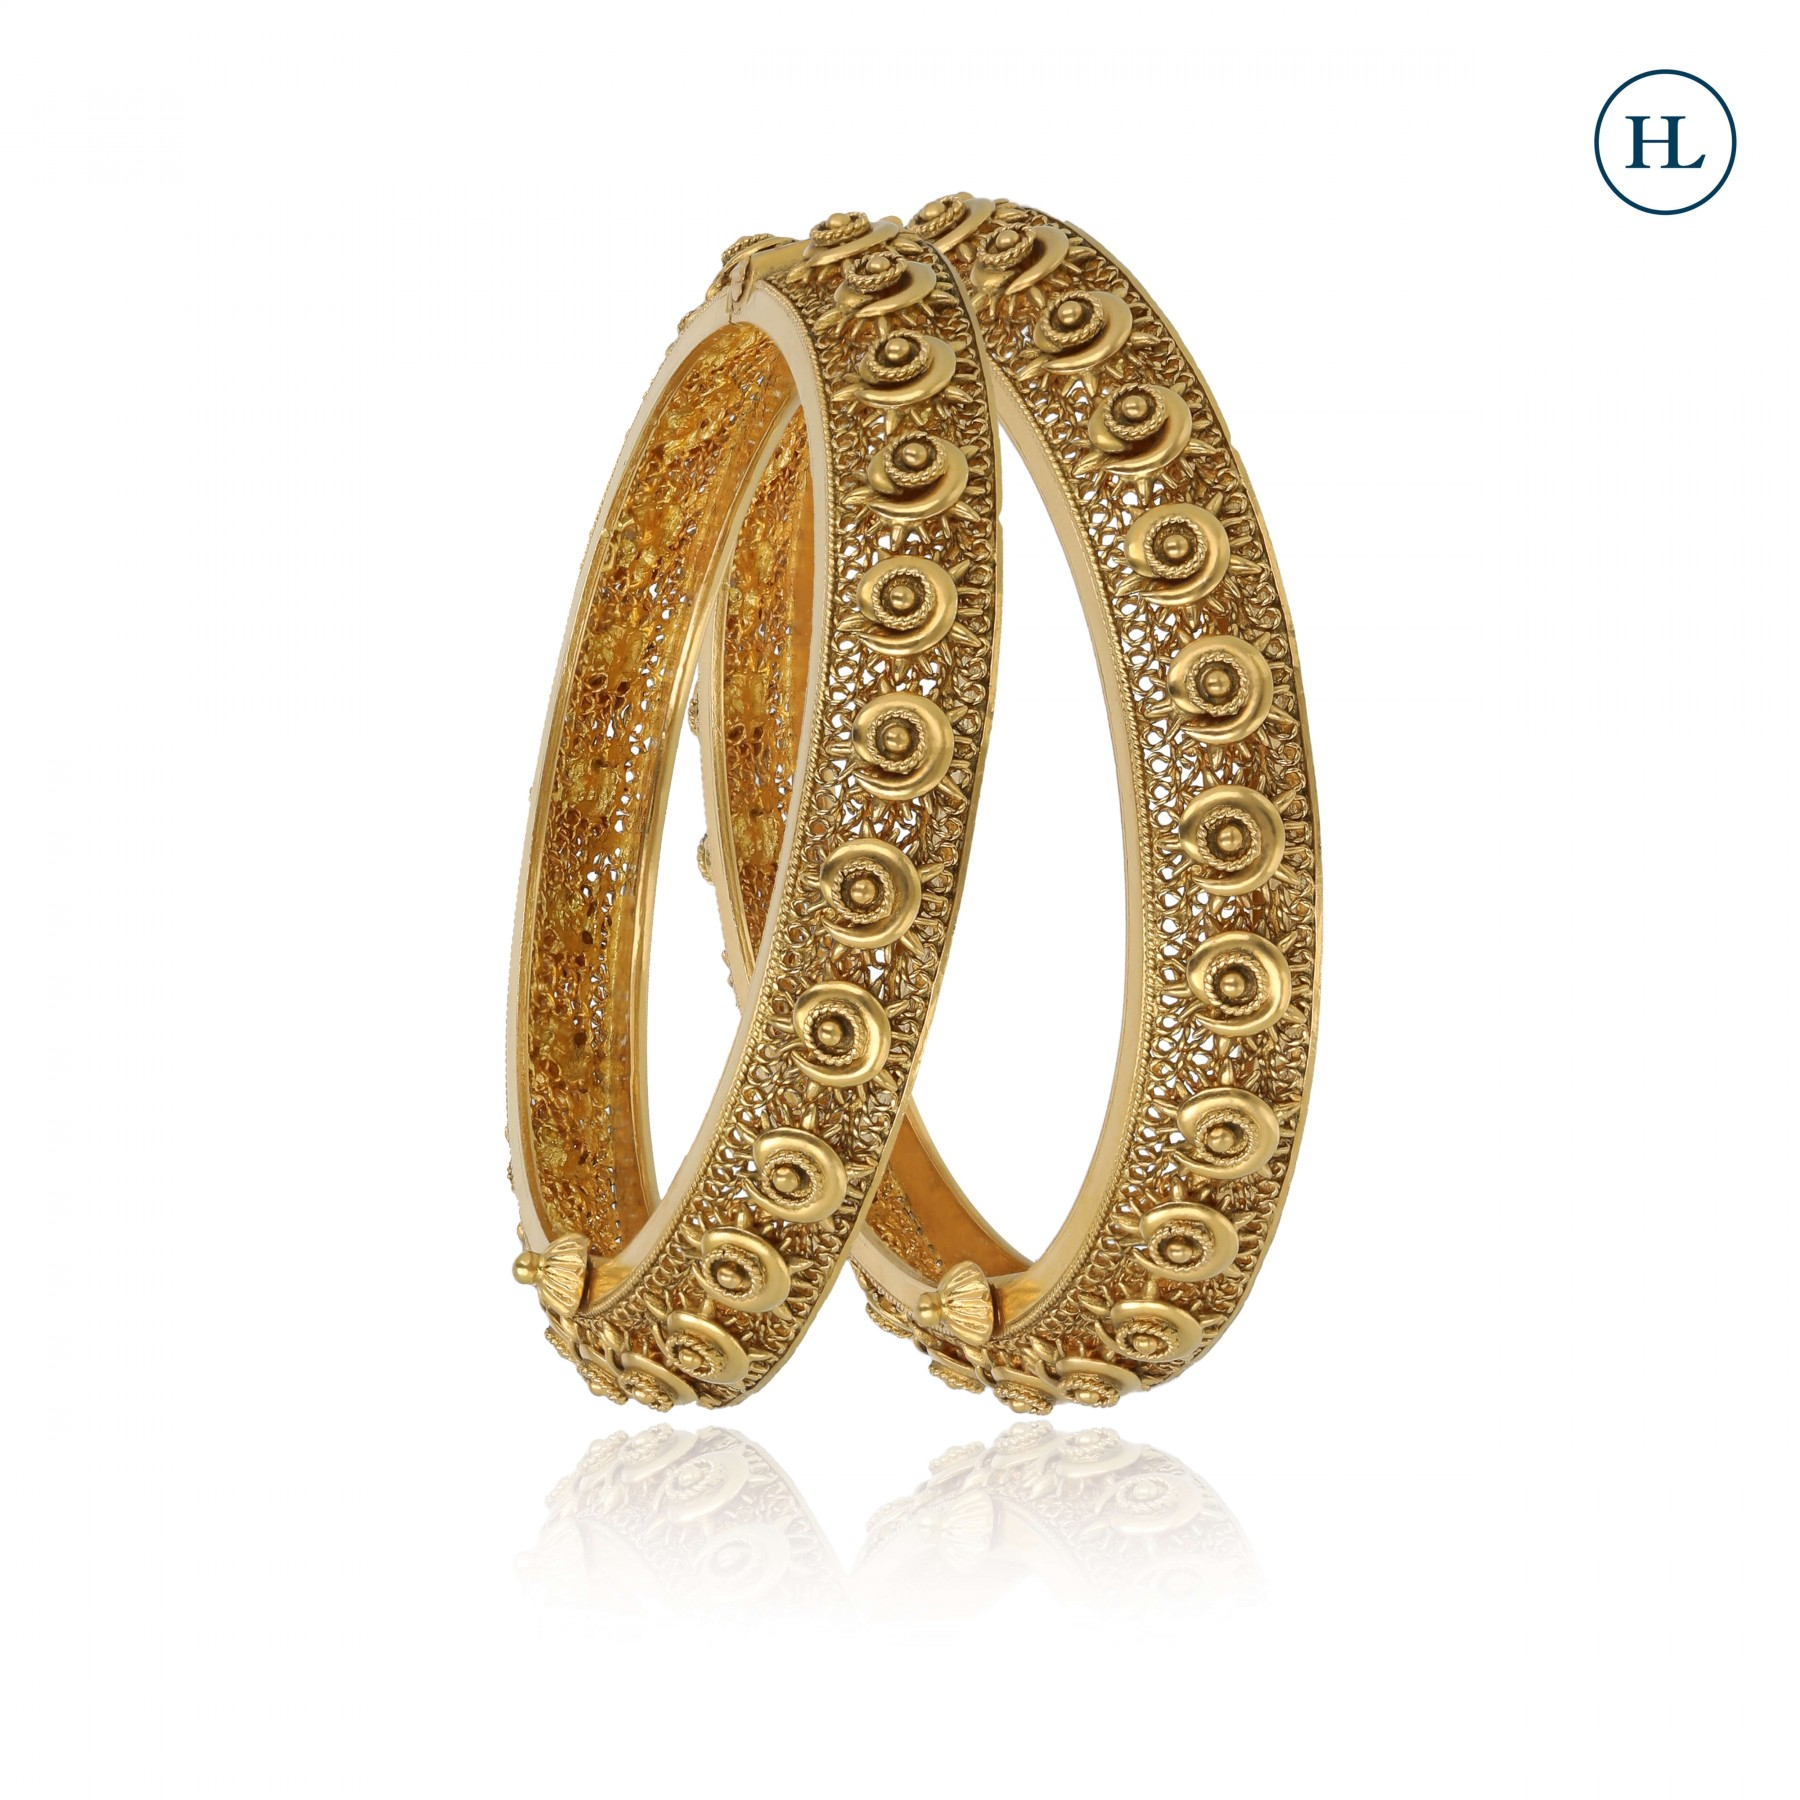 Antique-Styled Openable Gold Bangle Pair